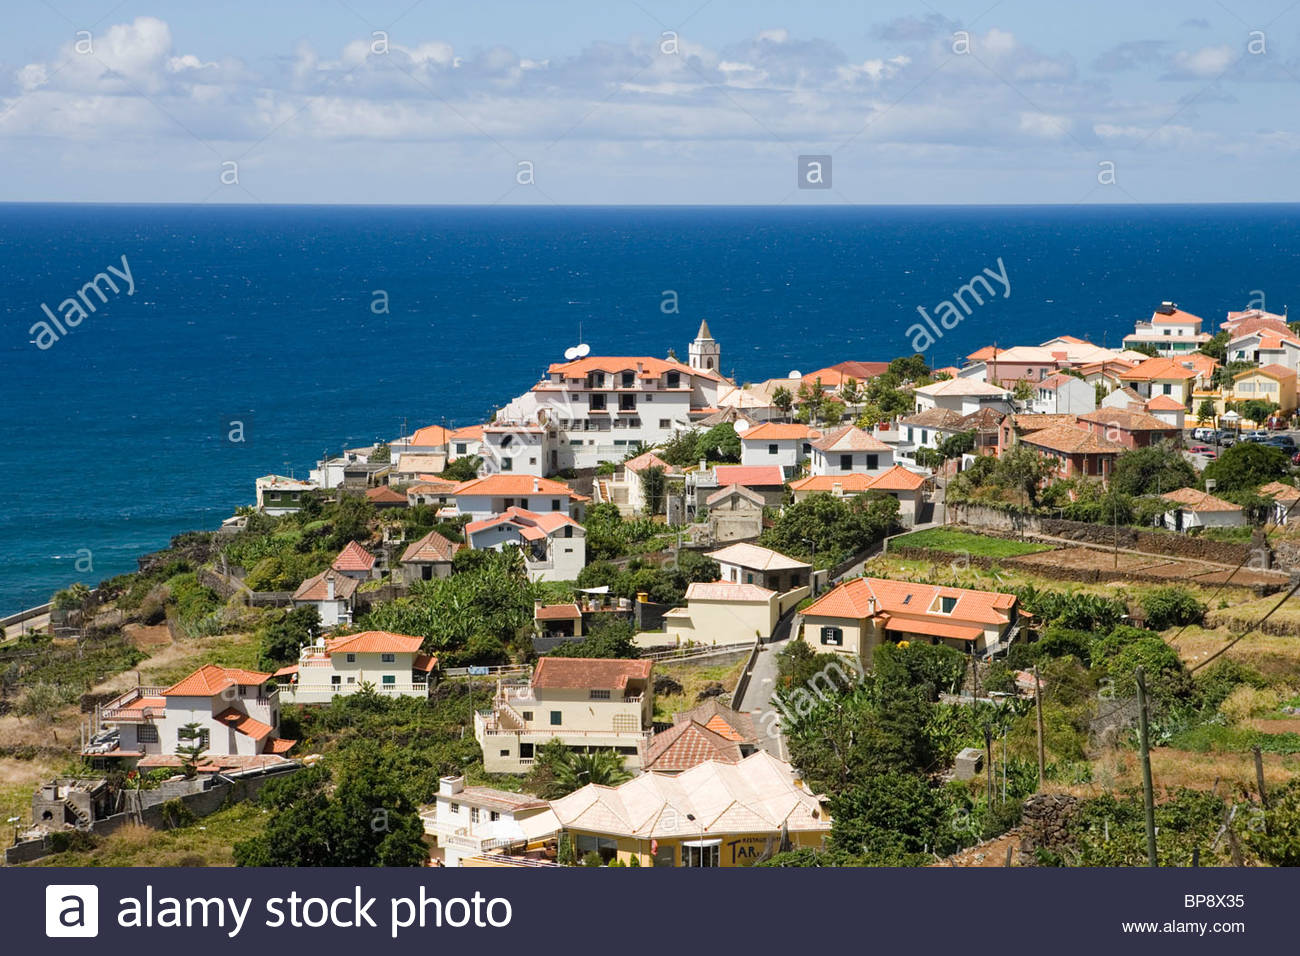 View over the town, Jardim do Mar, Madeira, Portugal - Stock Image